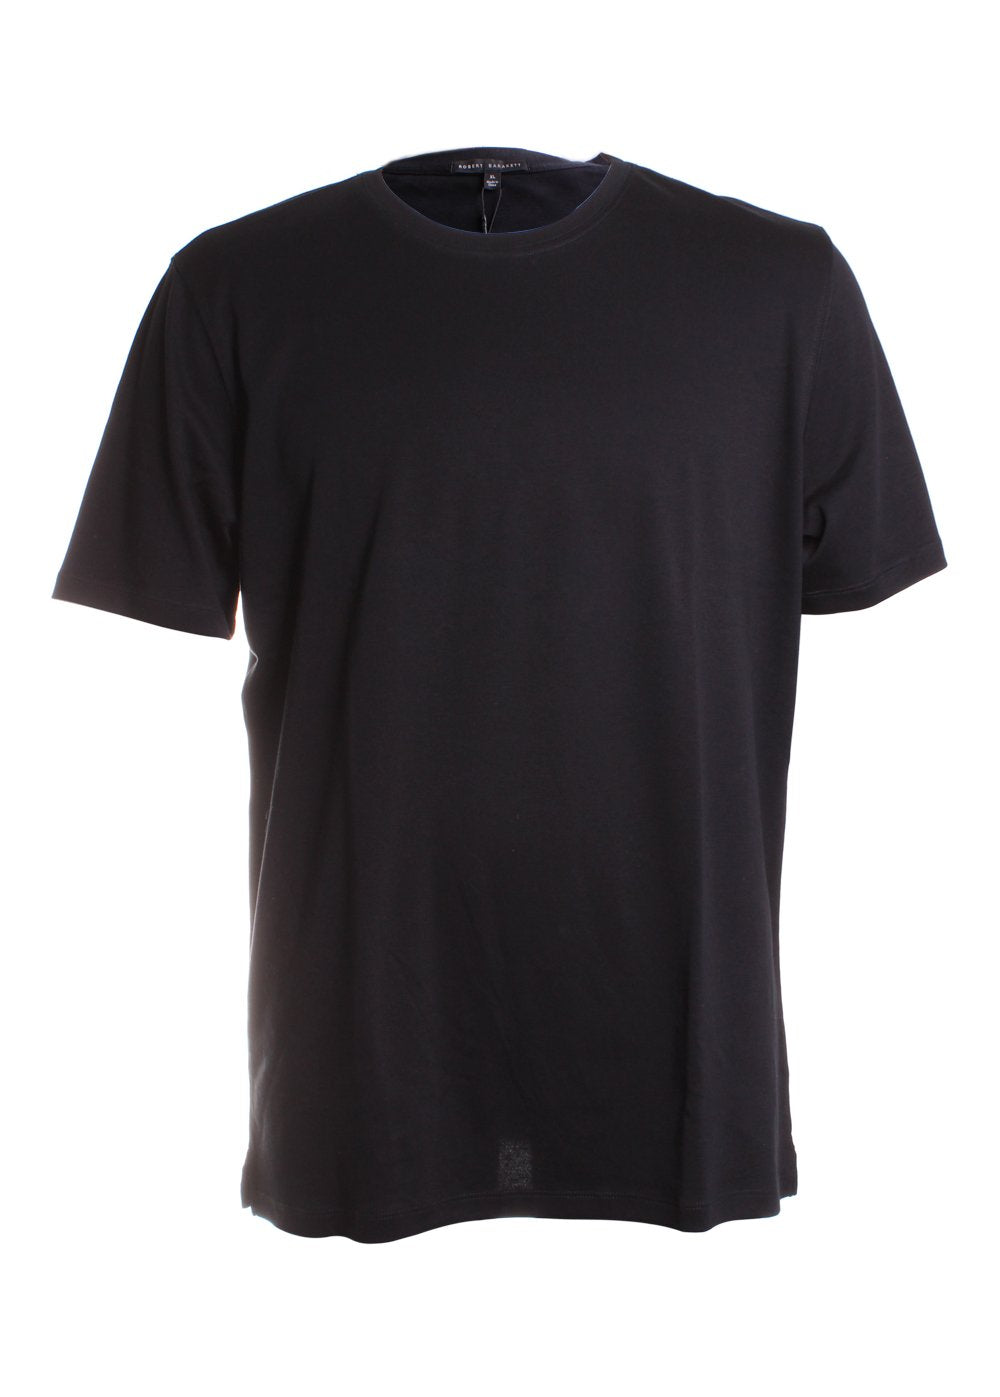 Robert Barakett Georgia Crew Neck T-Shirt in Black